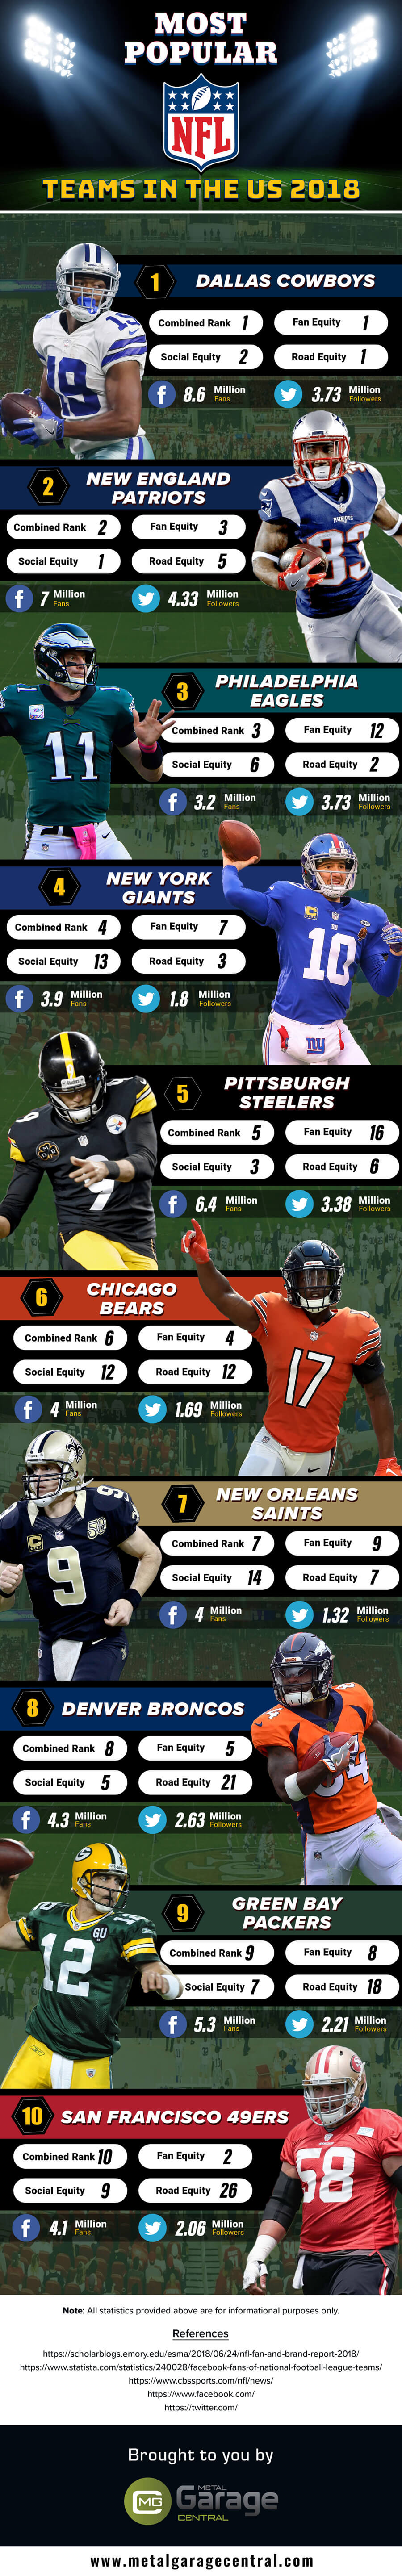 Most-Popular-NFL-Teams-in-the-US-2018-infographic-plaza